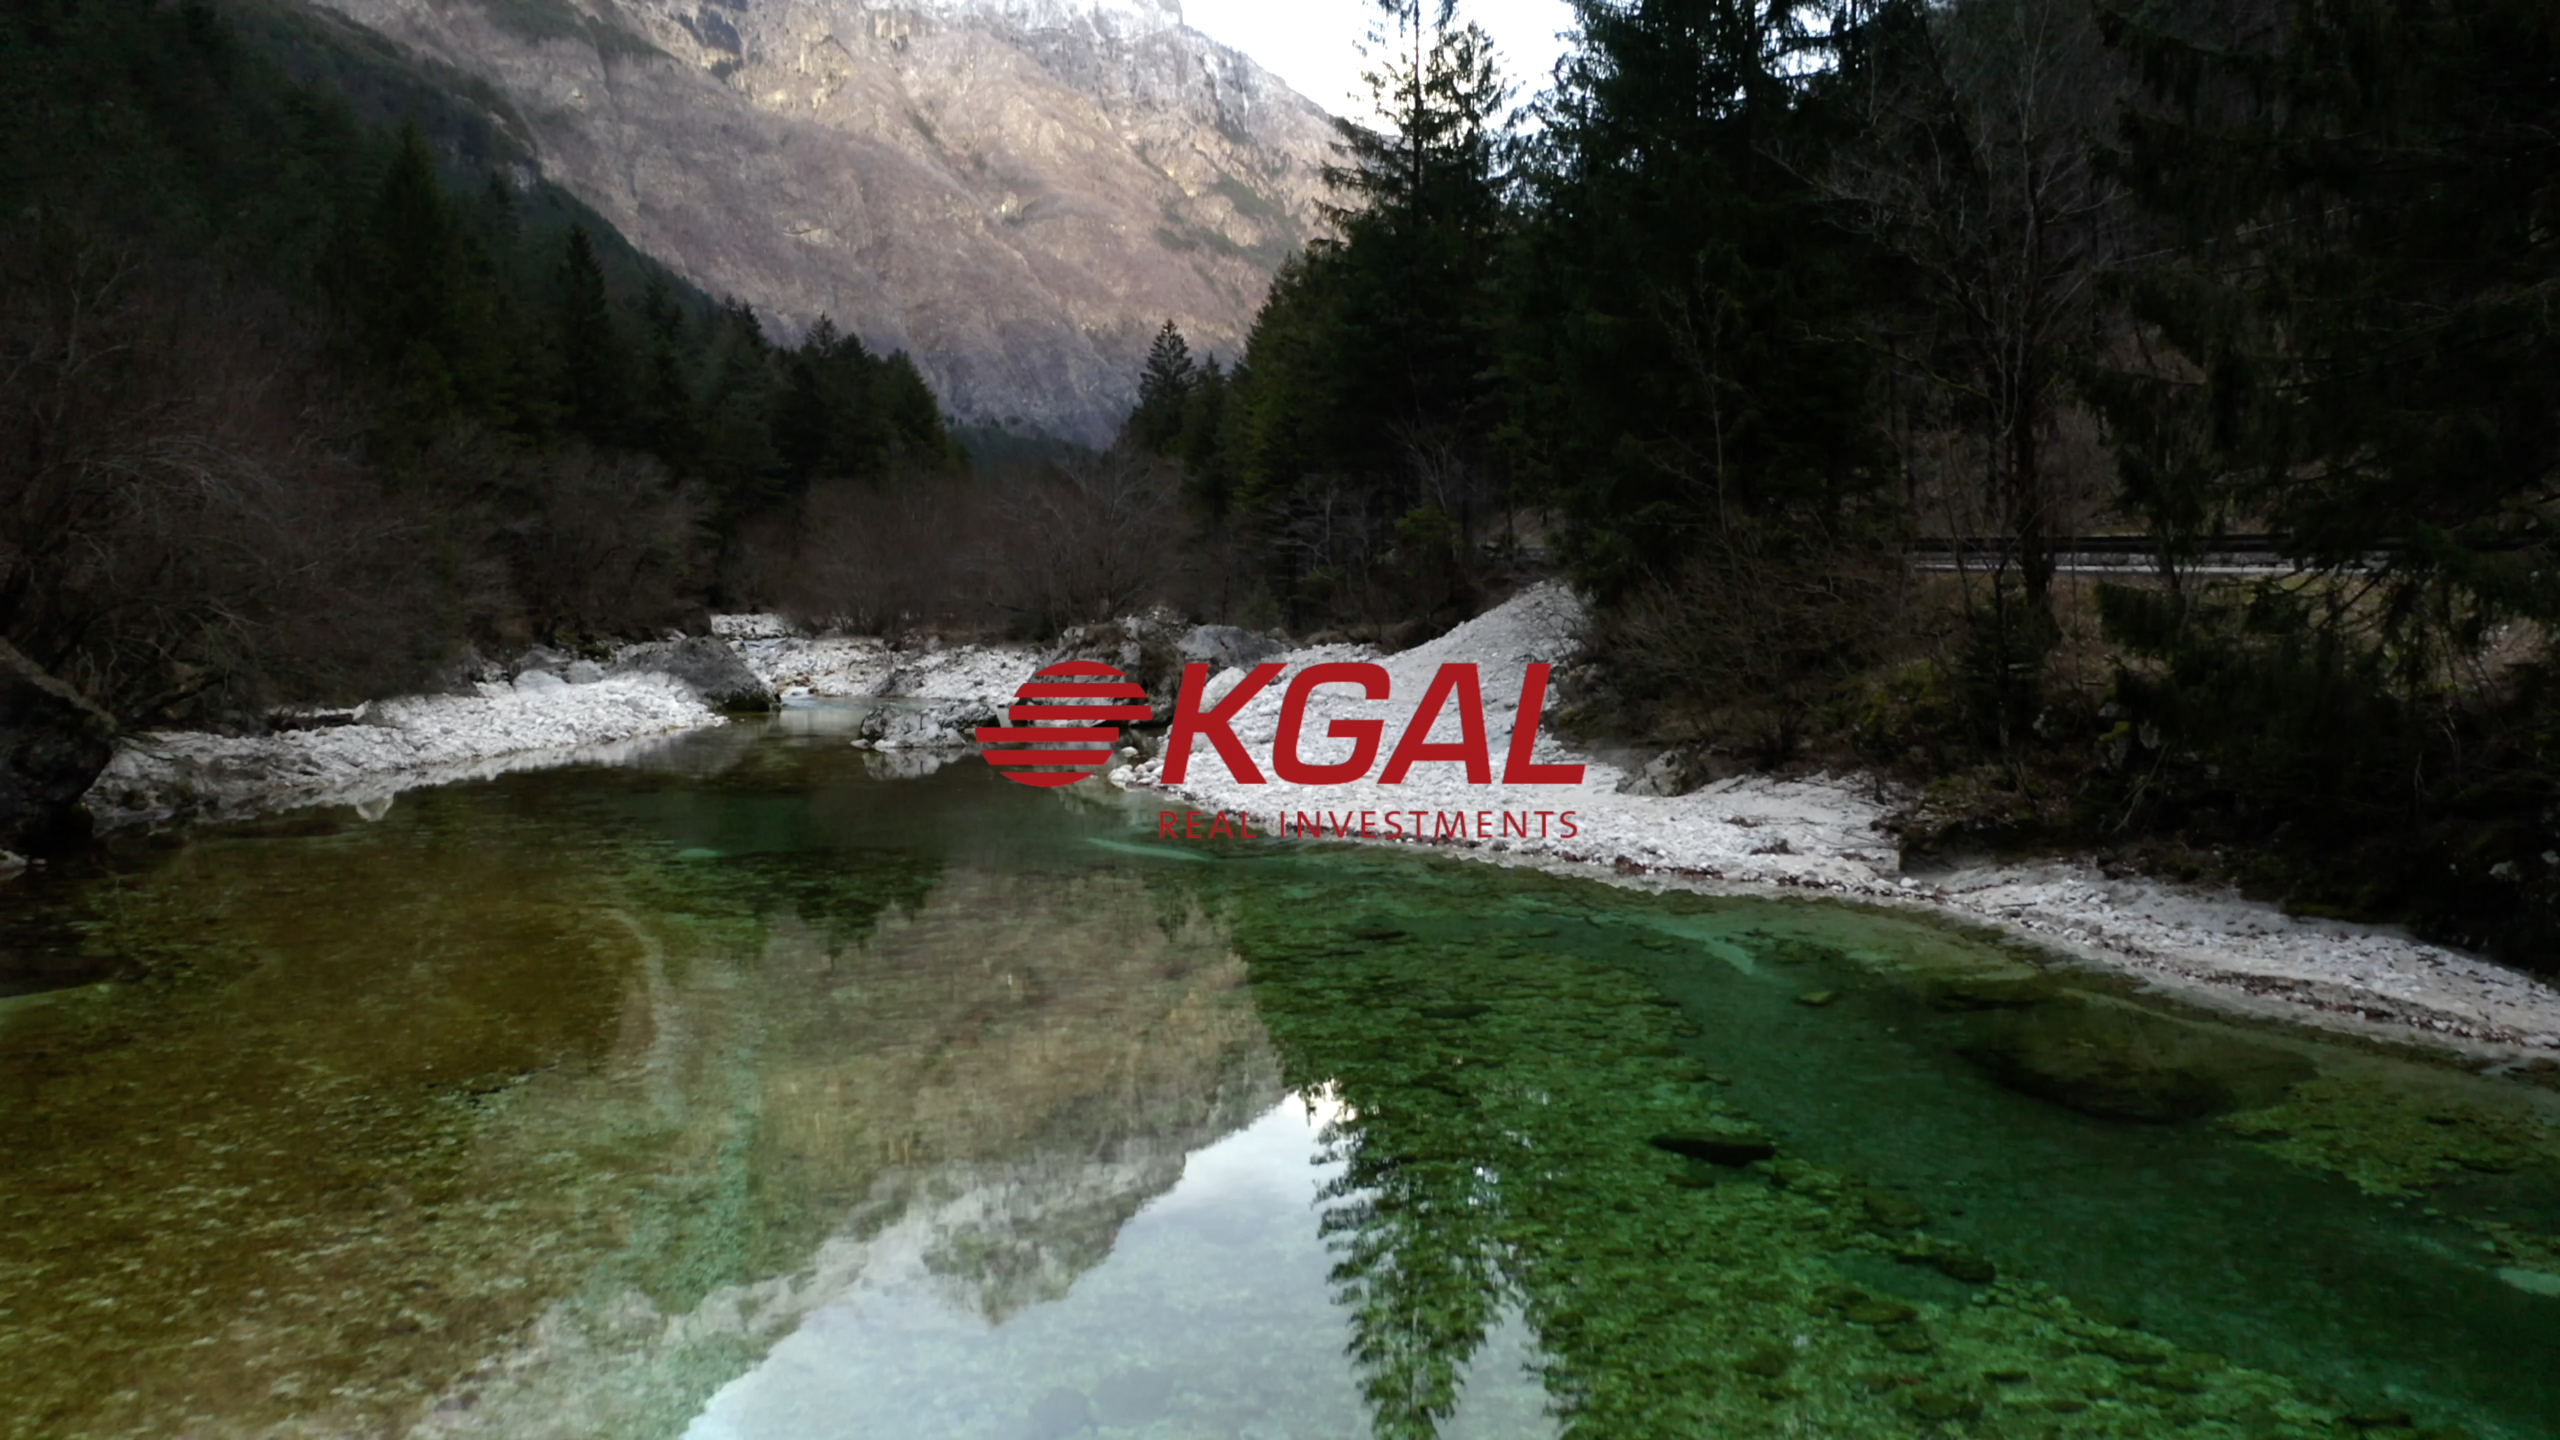 KGAL Infrastructure